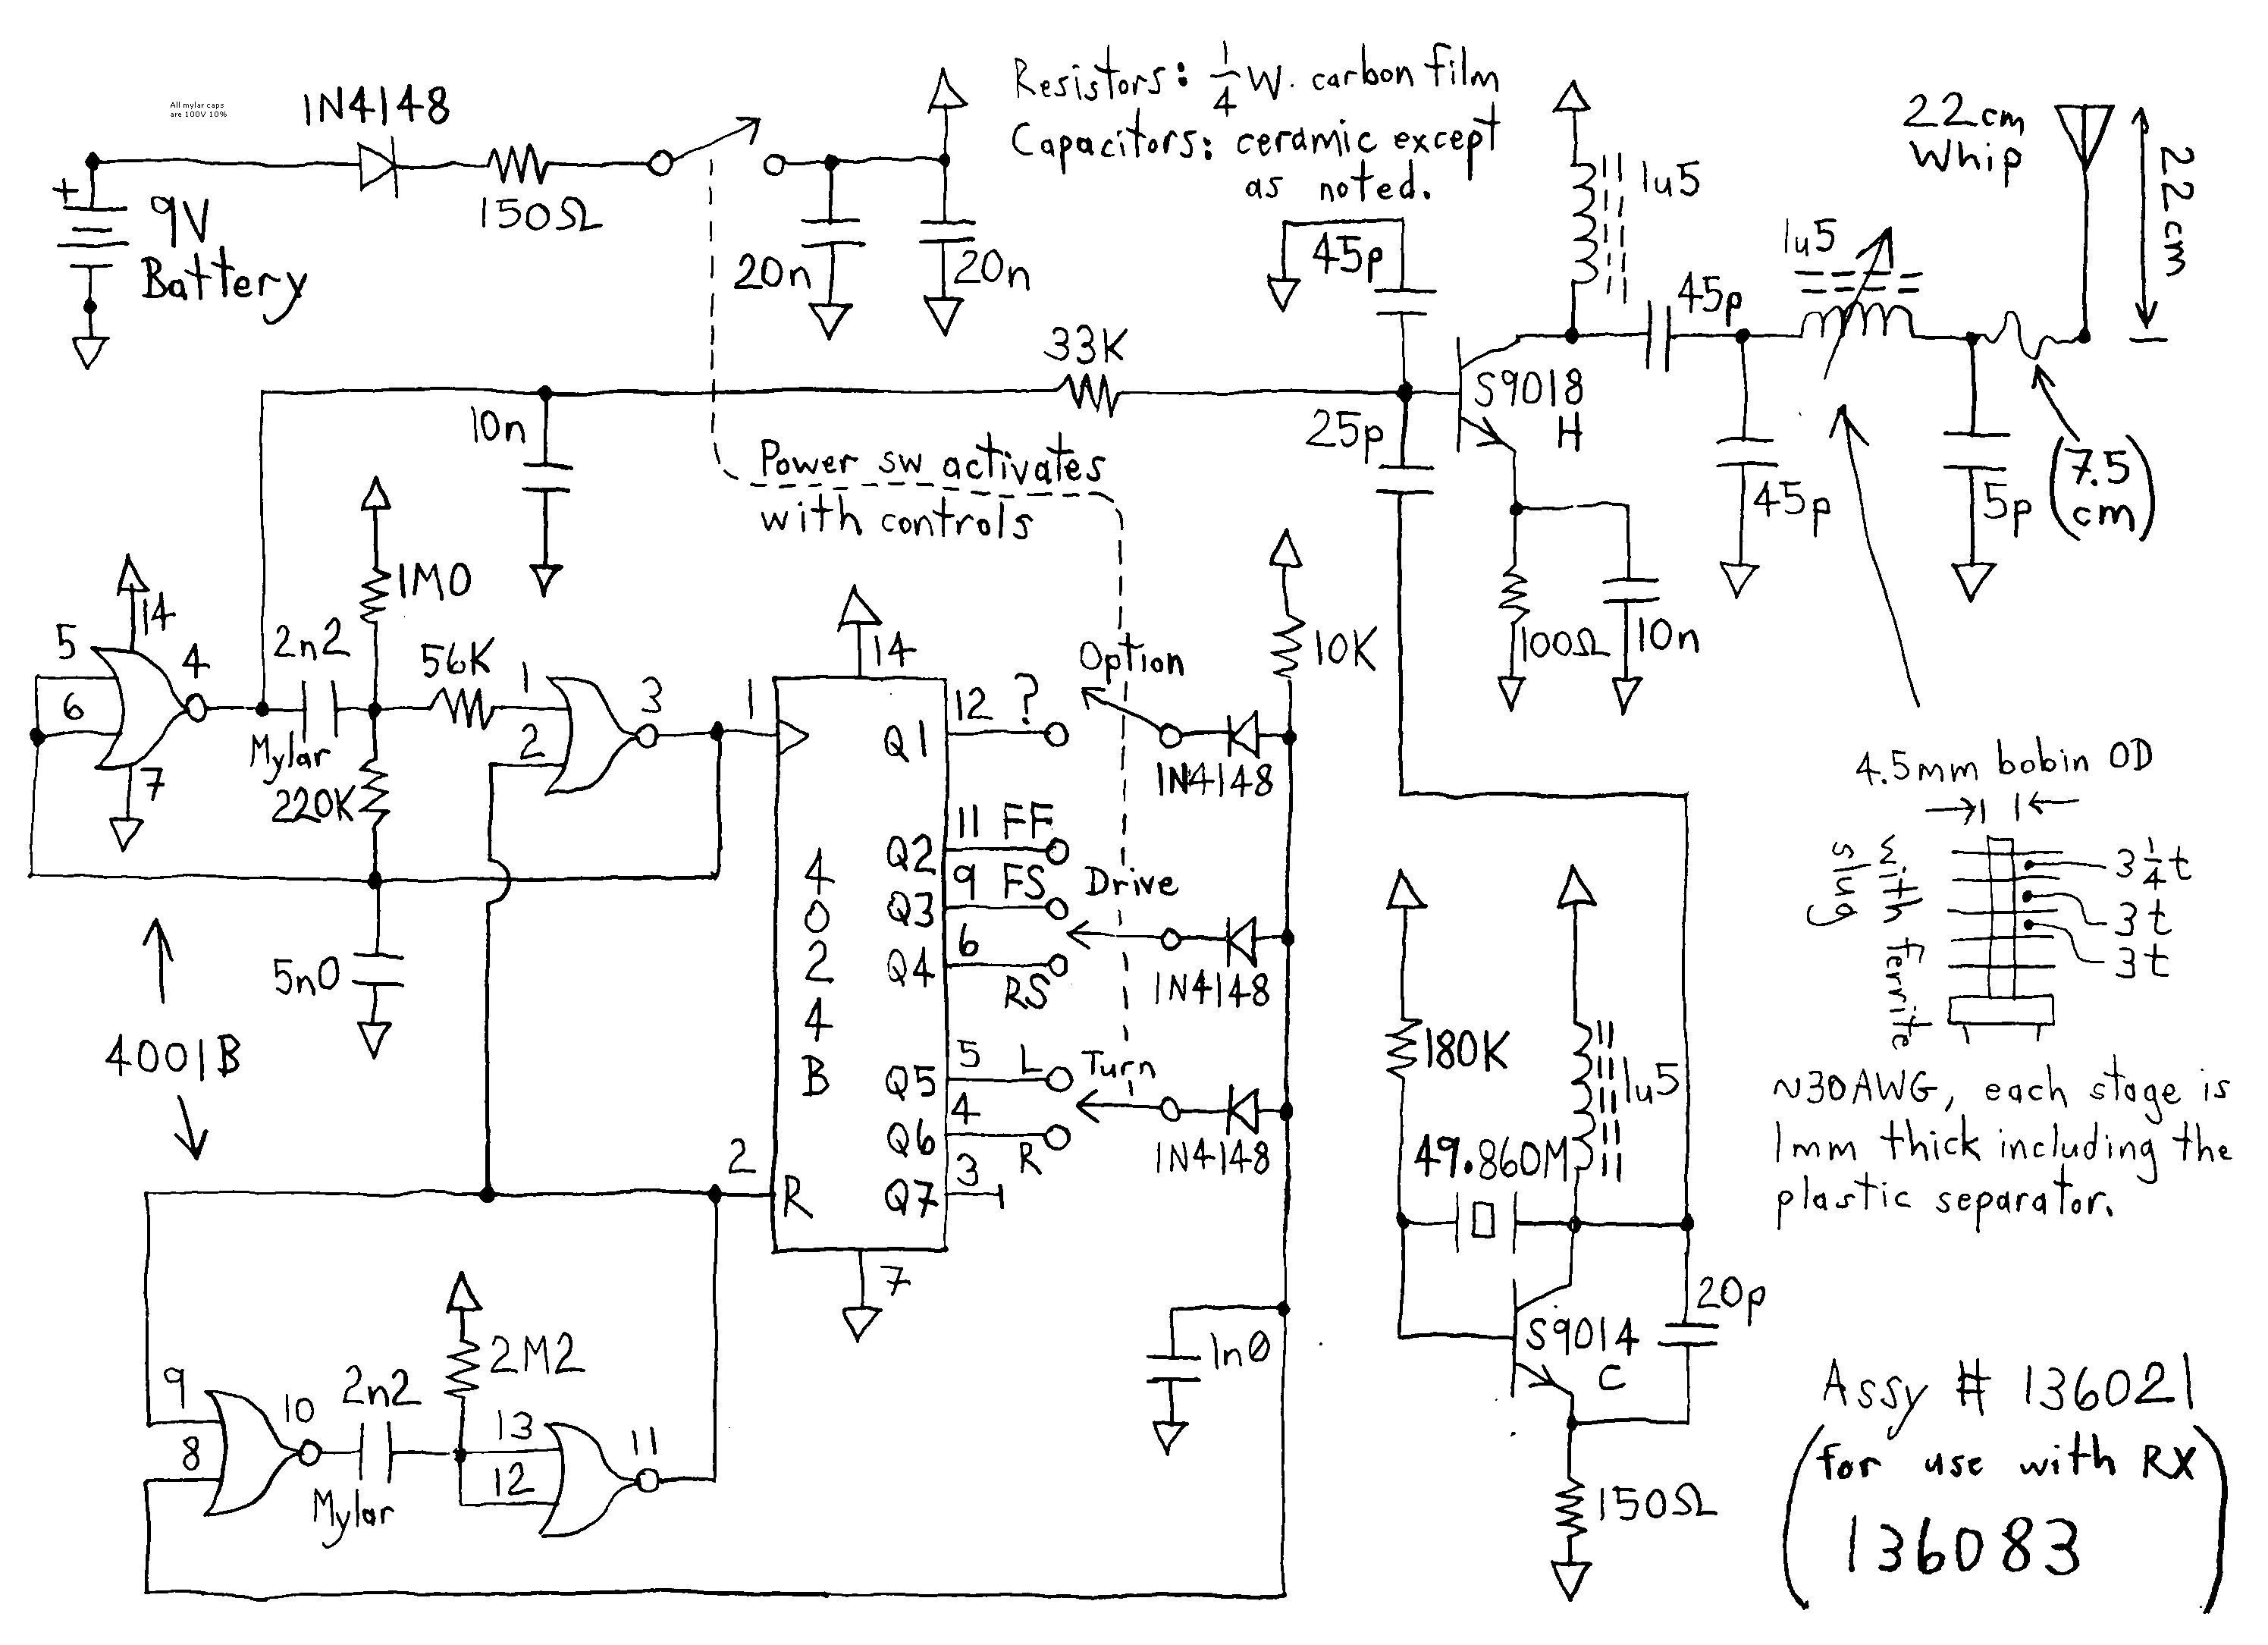 wiring diagram bridge rectifier Download-Wiring Diagram Bridge Rectifier Refrence Unique Bridge Rectifier Circuit Diagram 7-o